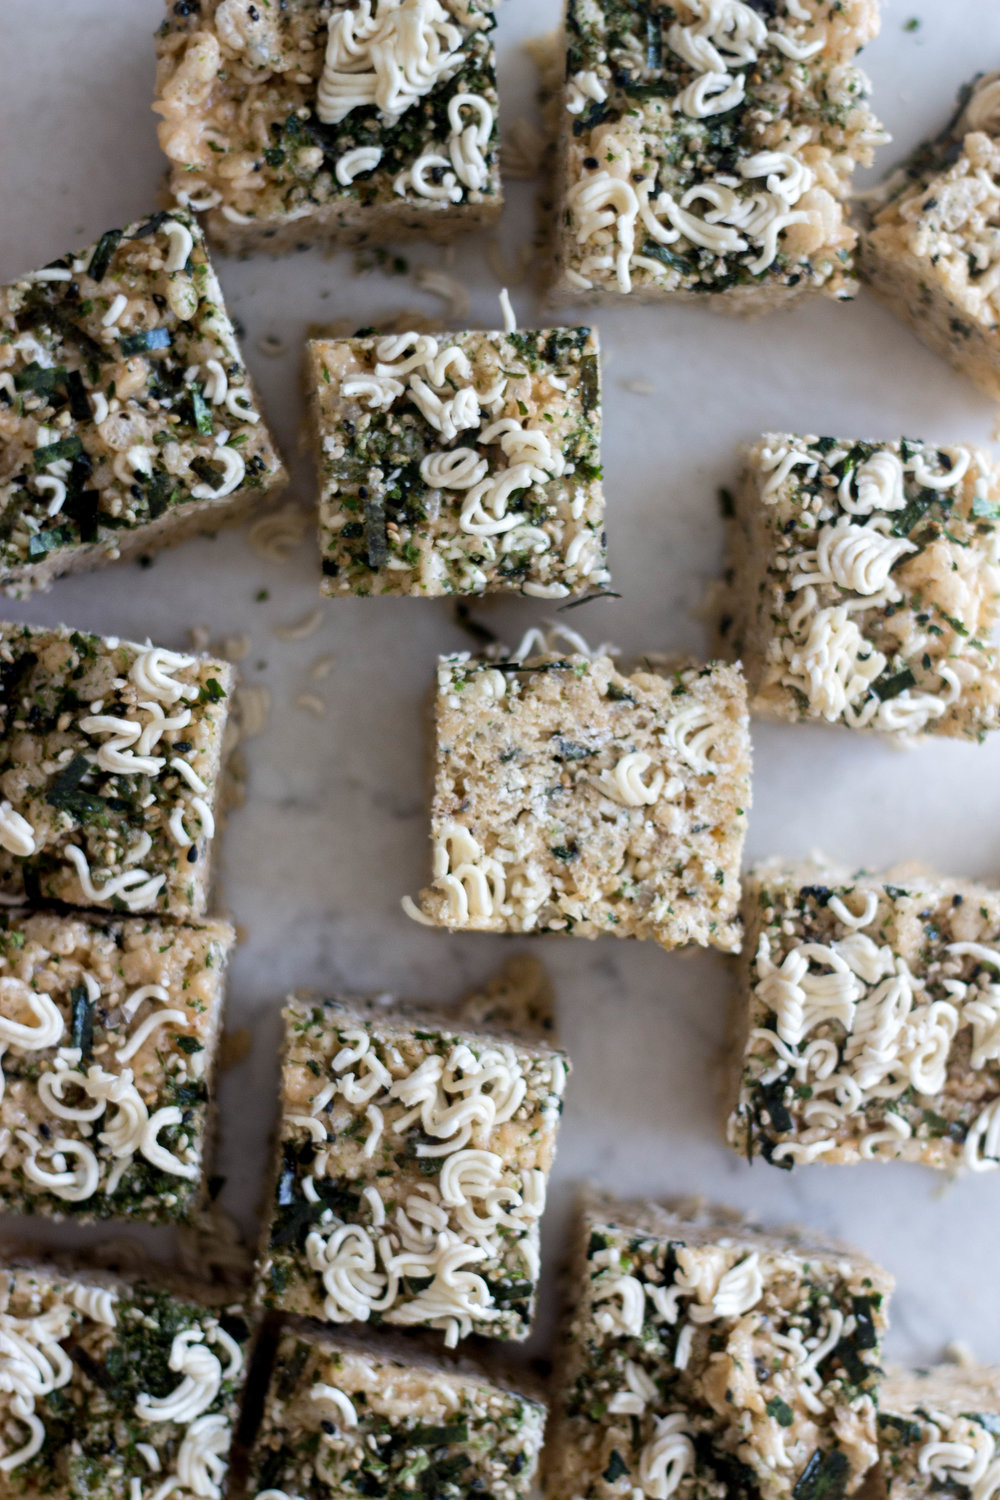 Ramen Furikake Rice Krispies - makes one 8x8 or 9x9-inch panadapted from joy the baker4 tablespoons unsalted butter, plus more for greasing pan1 10-ounce bag large marshmallows 5 cups Rice Krispies cereal2 packages instant ramen noodles (like top ramen), 3 oz eachabout 6 tablespoons furikake seasoning, divided